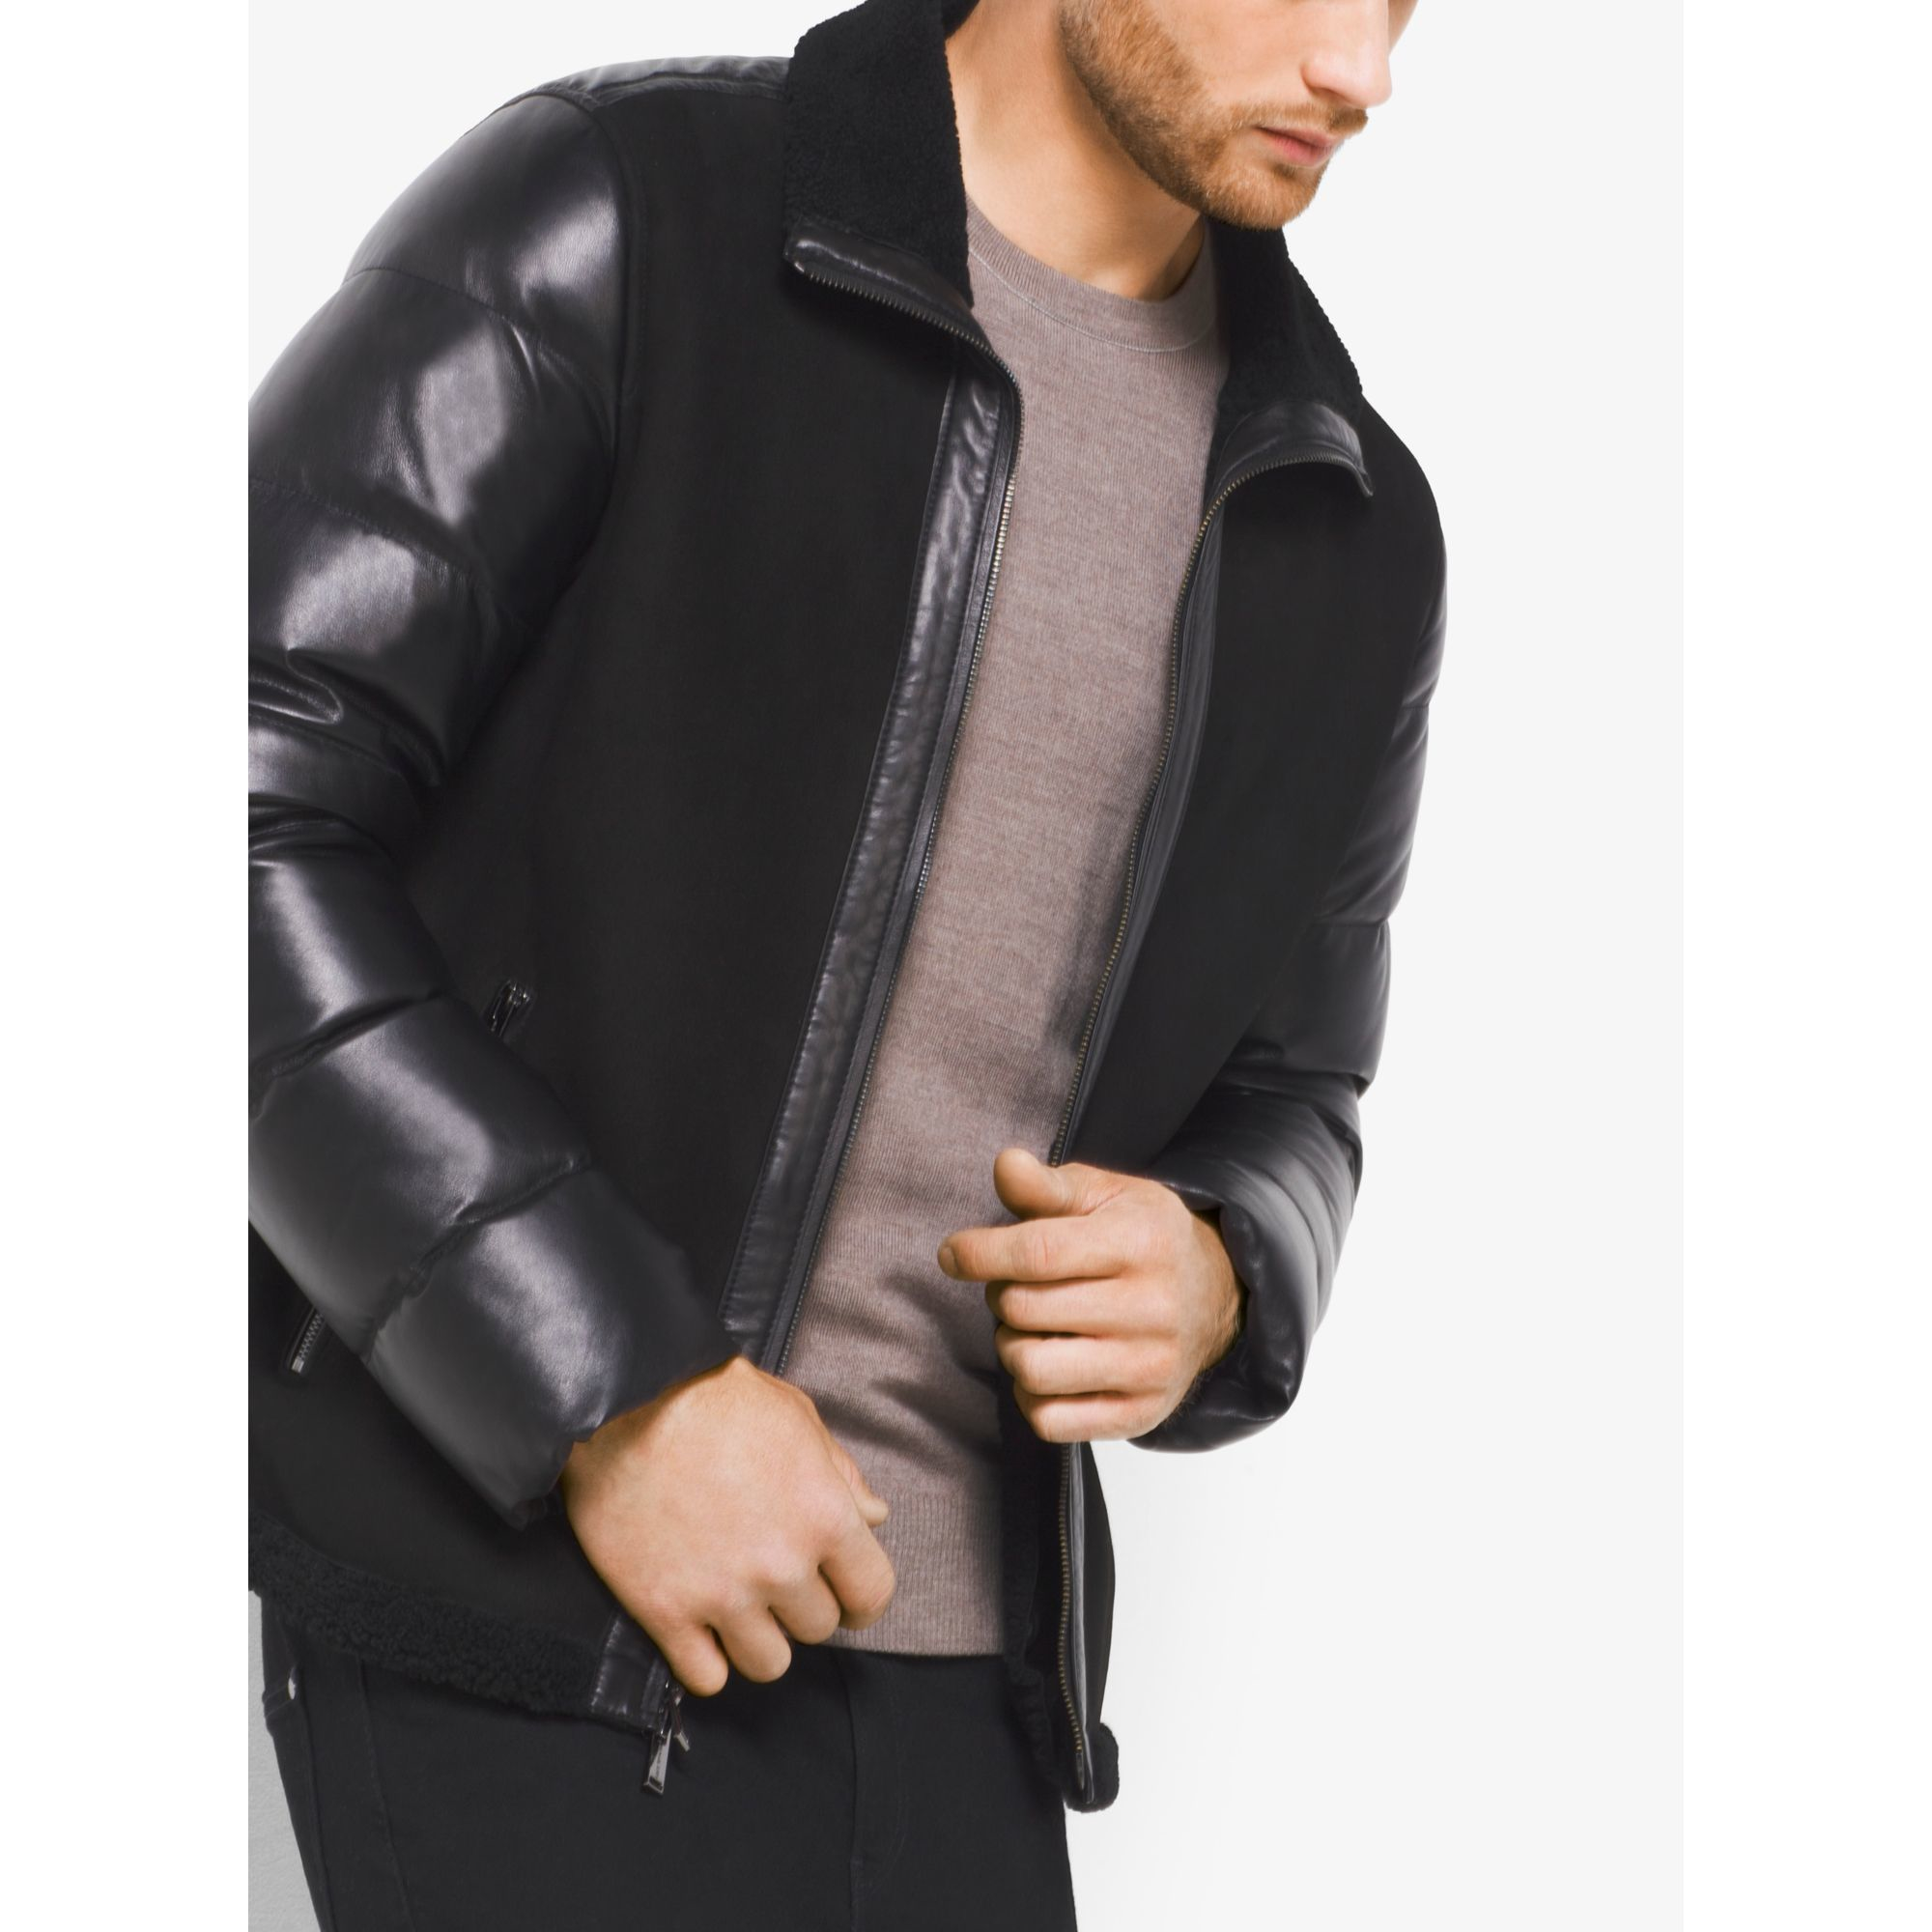 bd34383bdf1 Lyst - Michael Kors Shearling And Down Leather Jacket in Black for Men